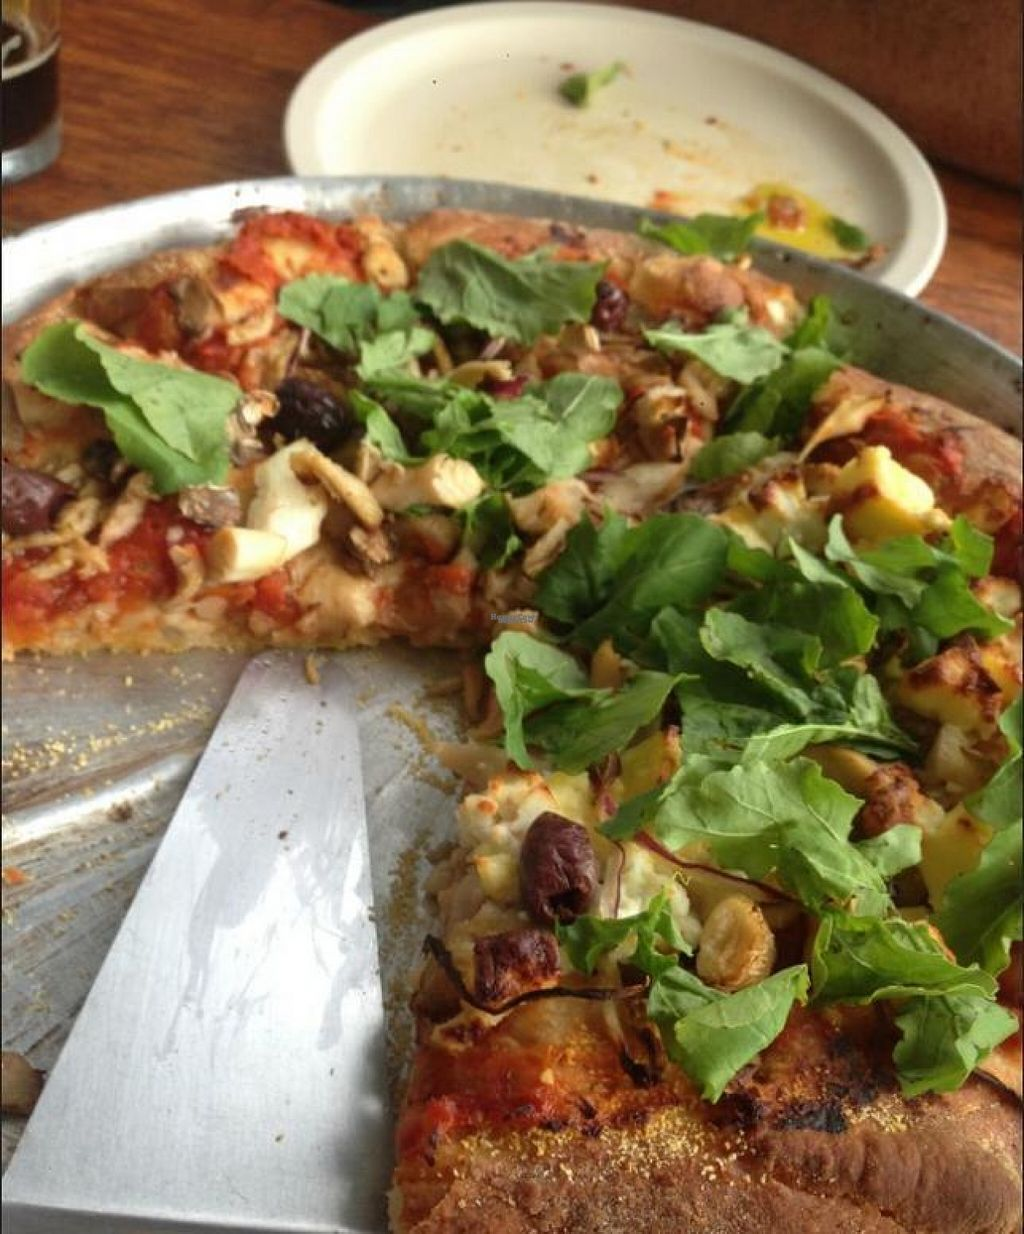 """Photo of Ravi Gastropub and Cafe  by <a href=""""/members/profile/JessicaMerced"""">JessicaMerced</a> <br/>Vegan pizza. The crust is really special.  <br/> August 10, 2016  - <a href='/contact/abuse/image/40060/167566'>Report</a>"""